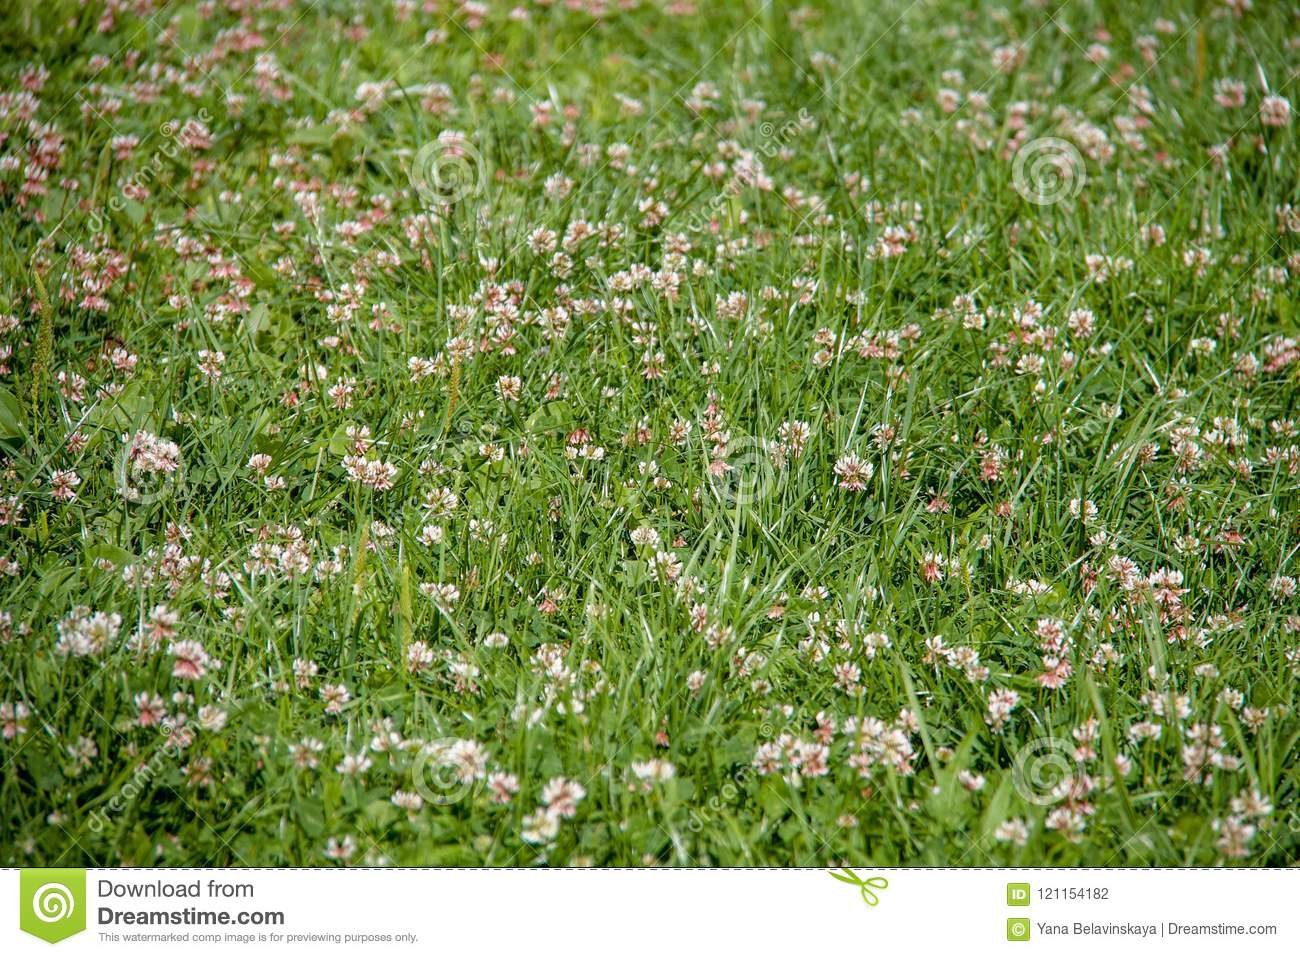 Field Full Of Green Grass With Lots Of Small White Flowers Stock